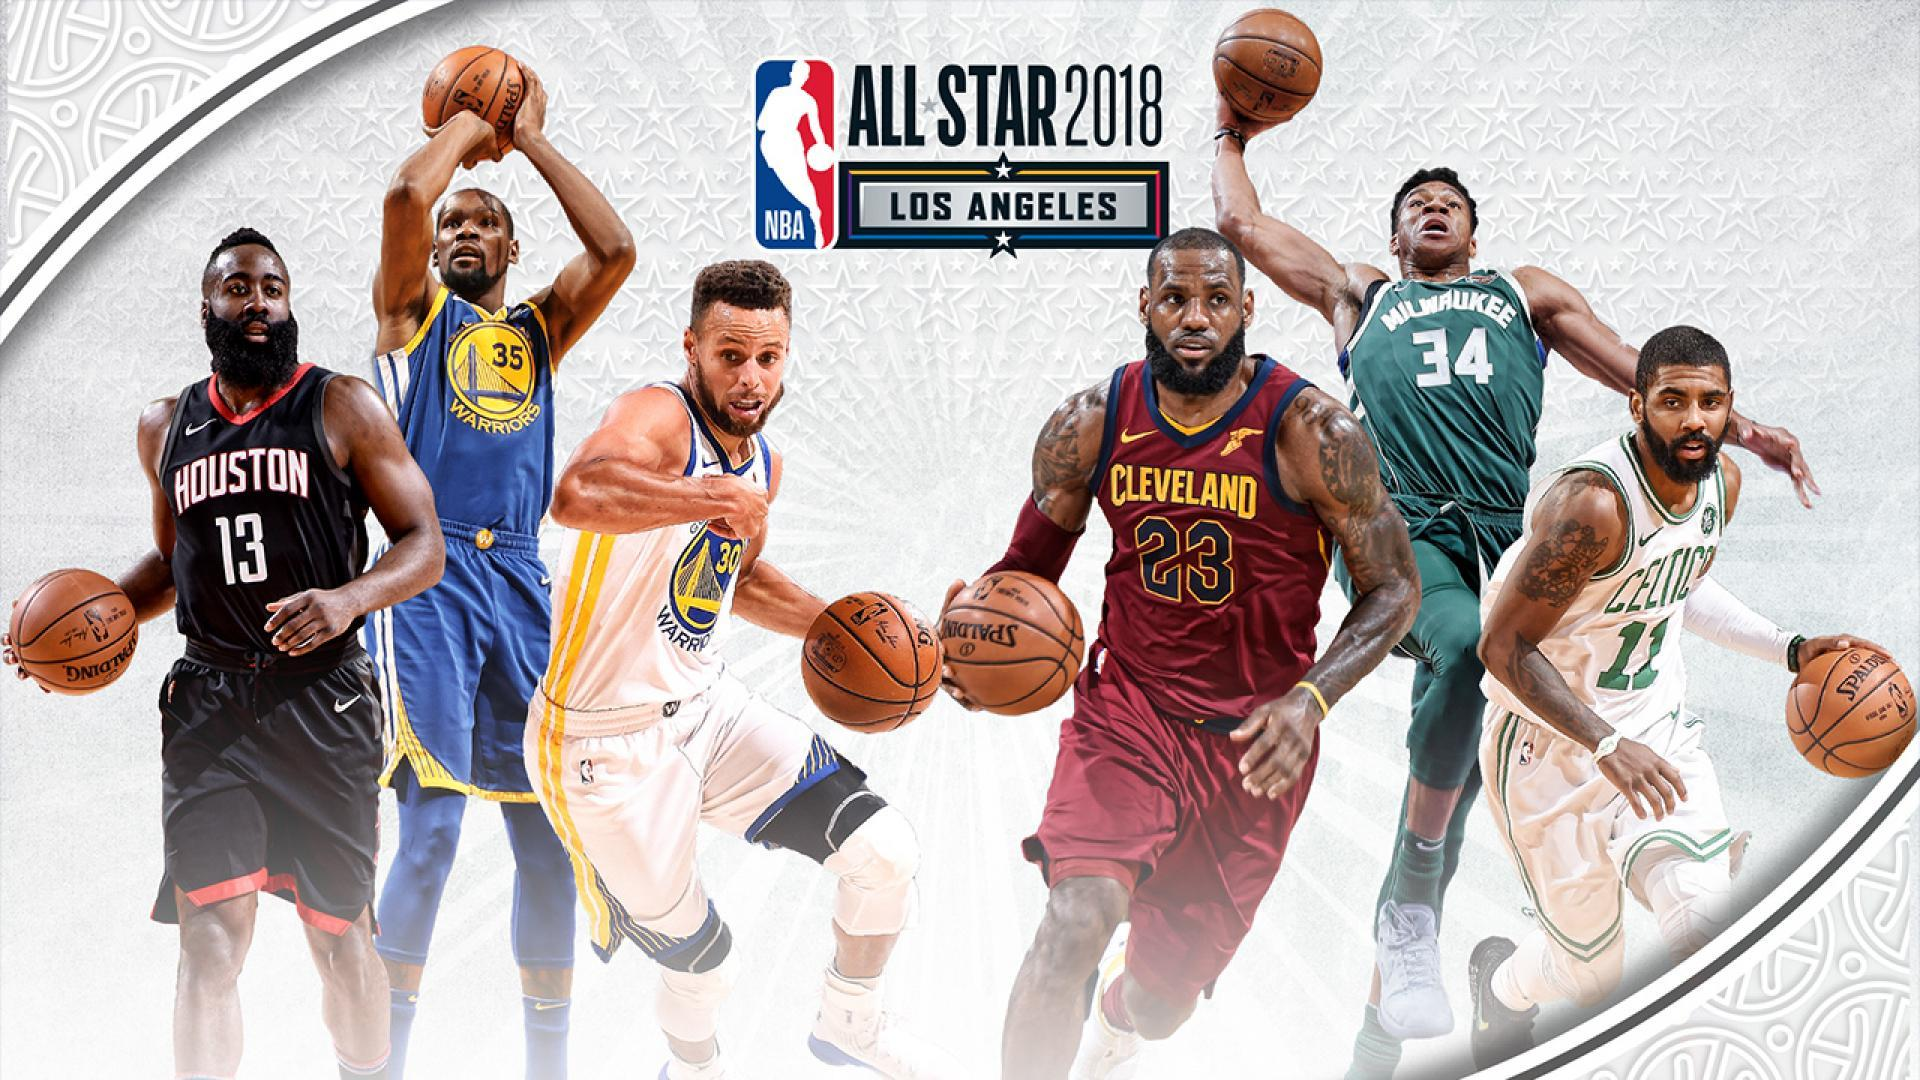 All Star Game 2018 LeBron vs Curry